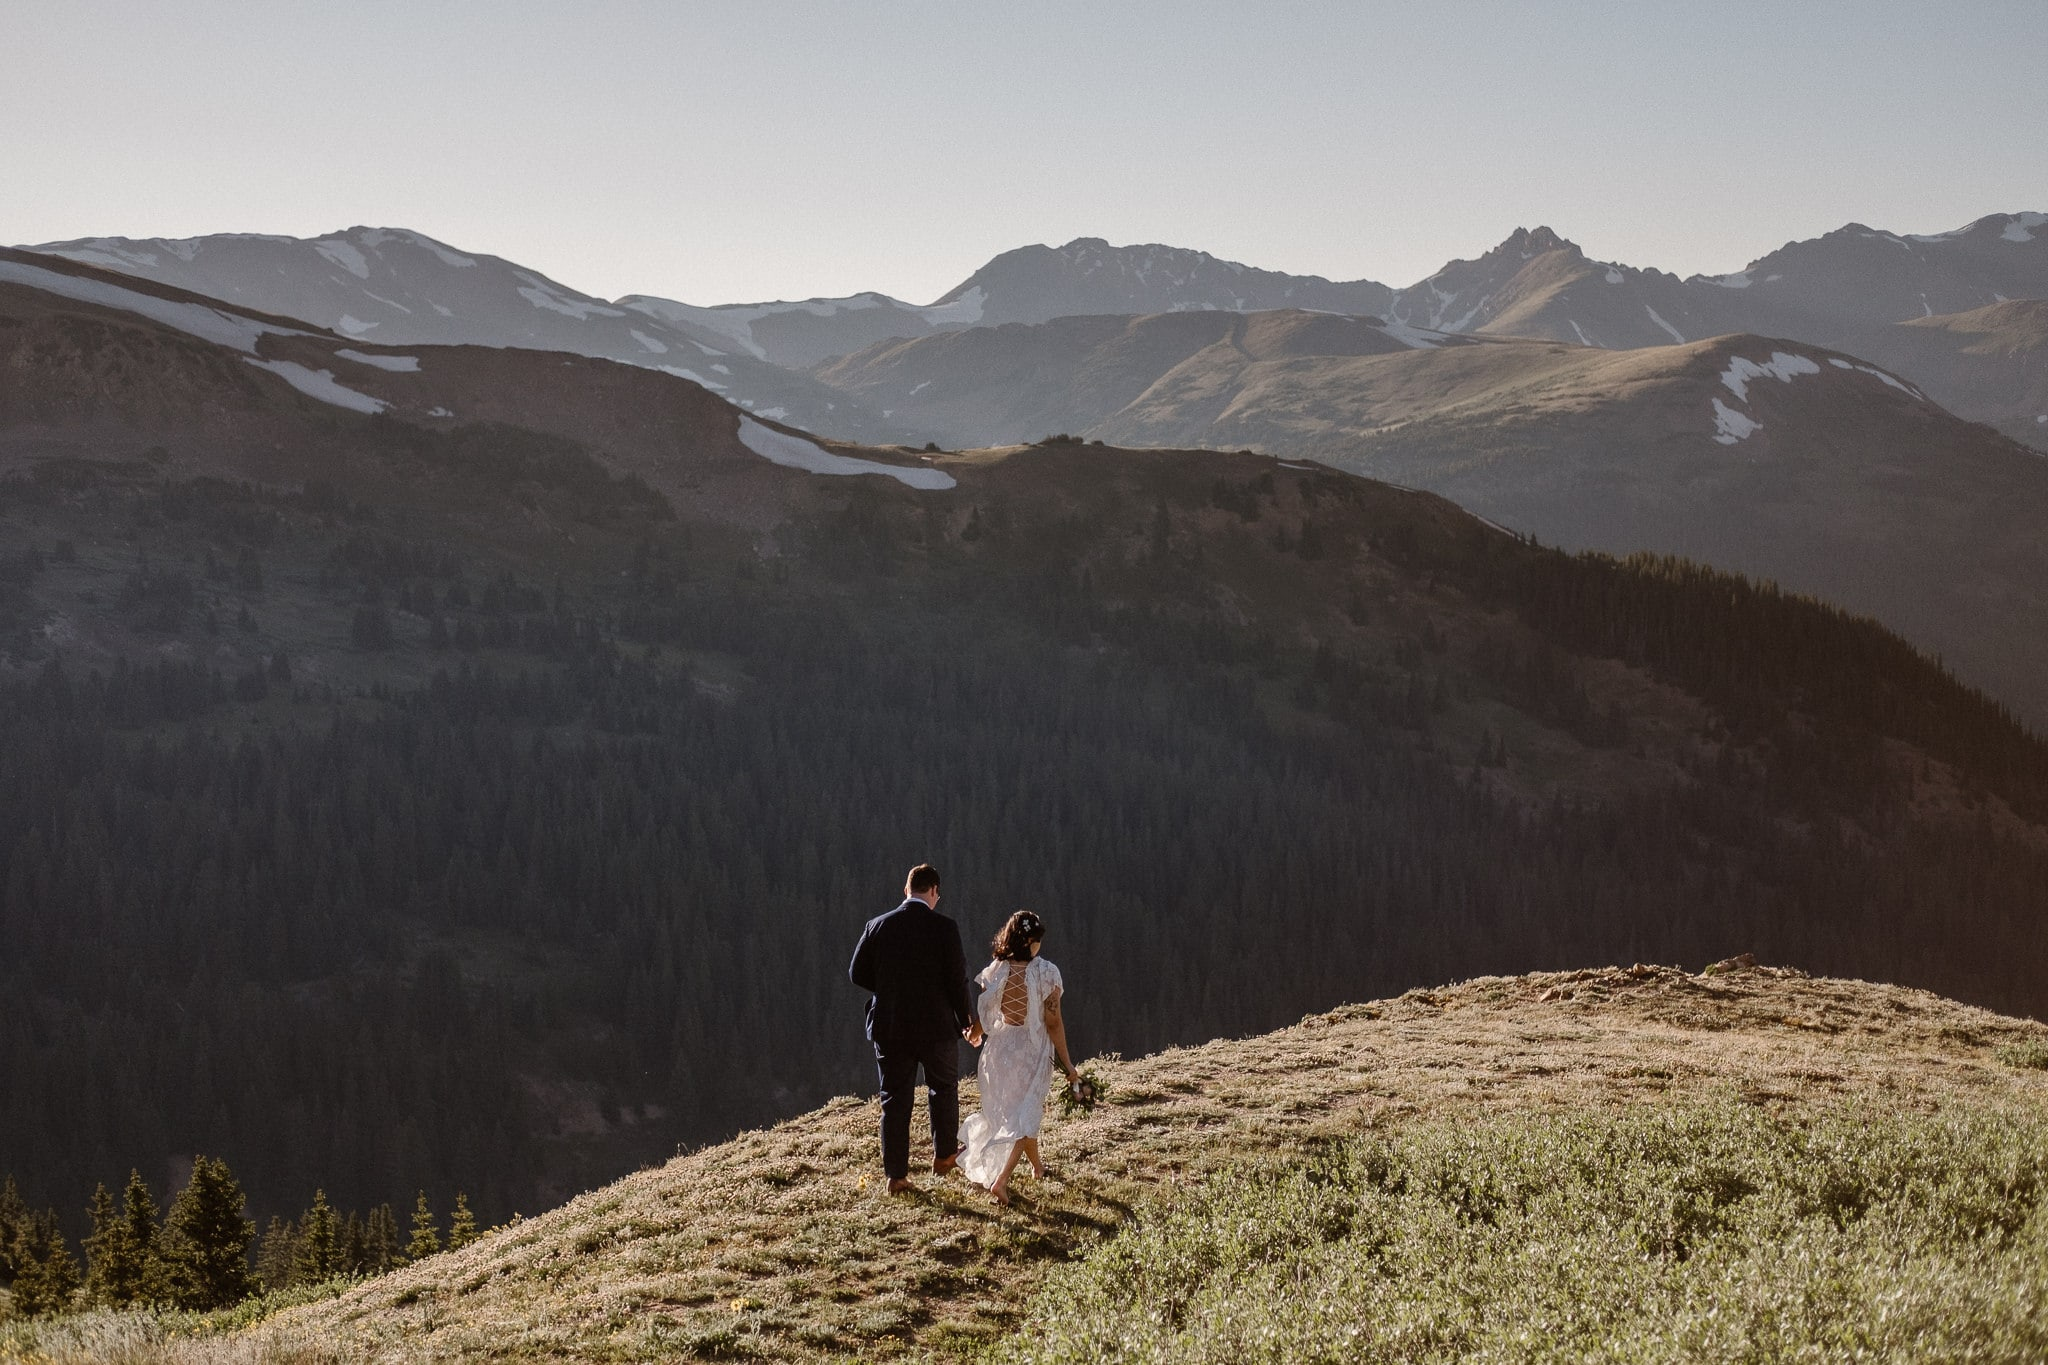 Loveland Pass Elopement & Wedding Guide